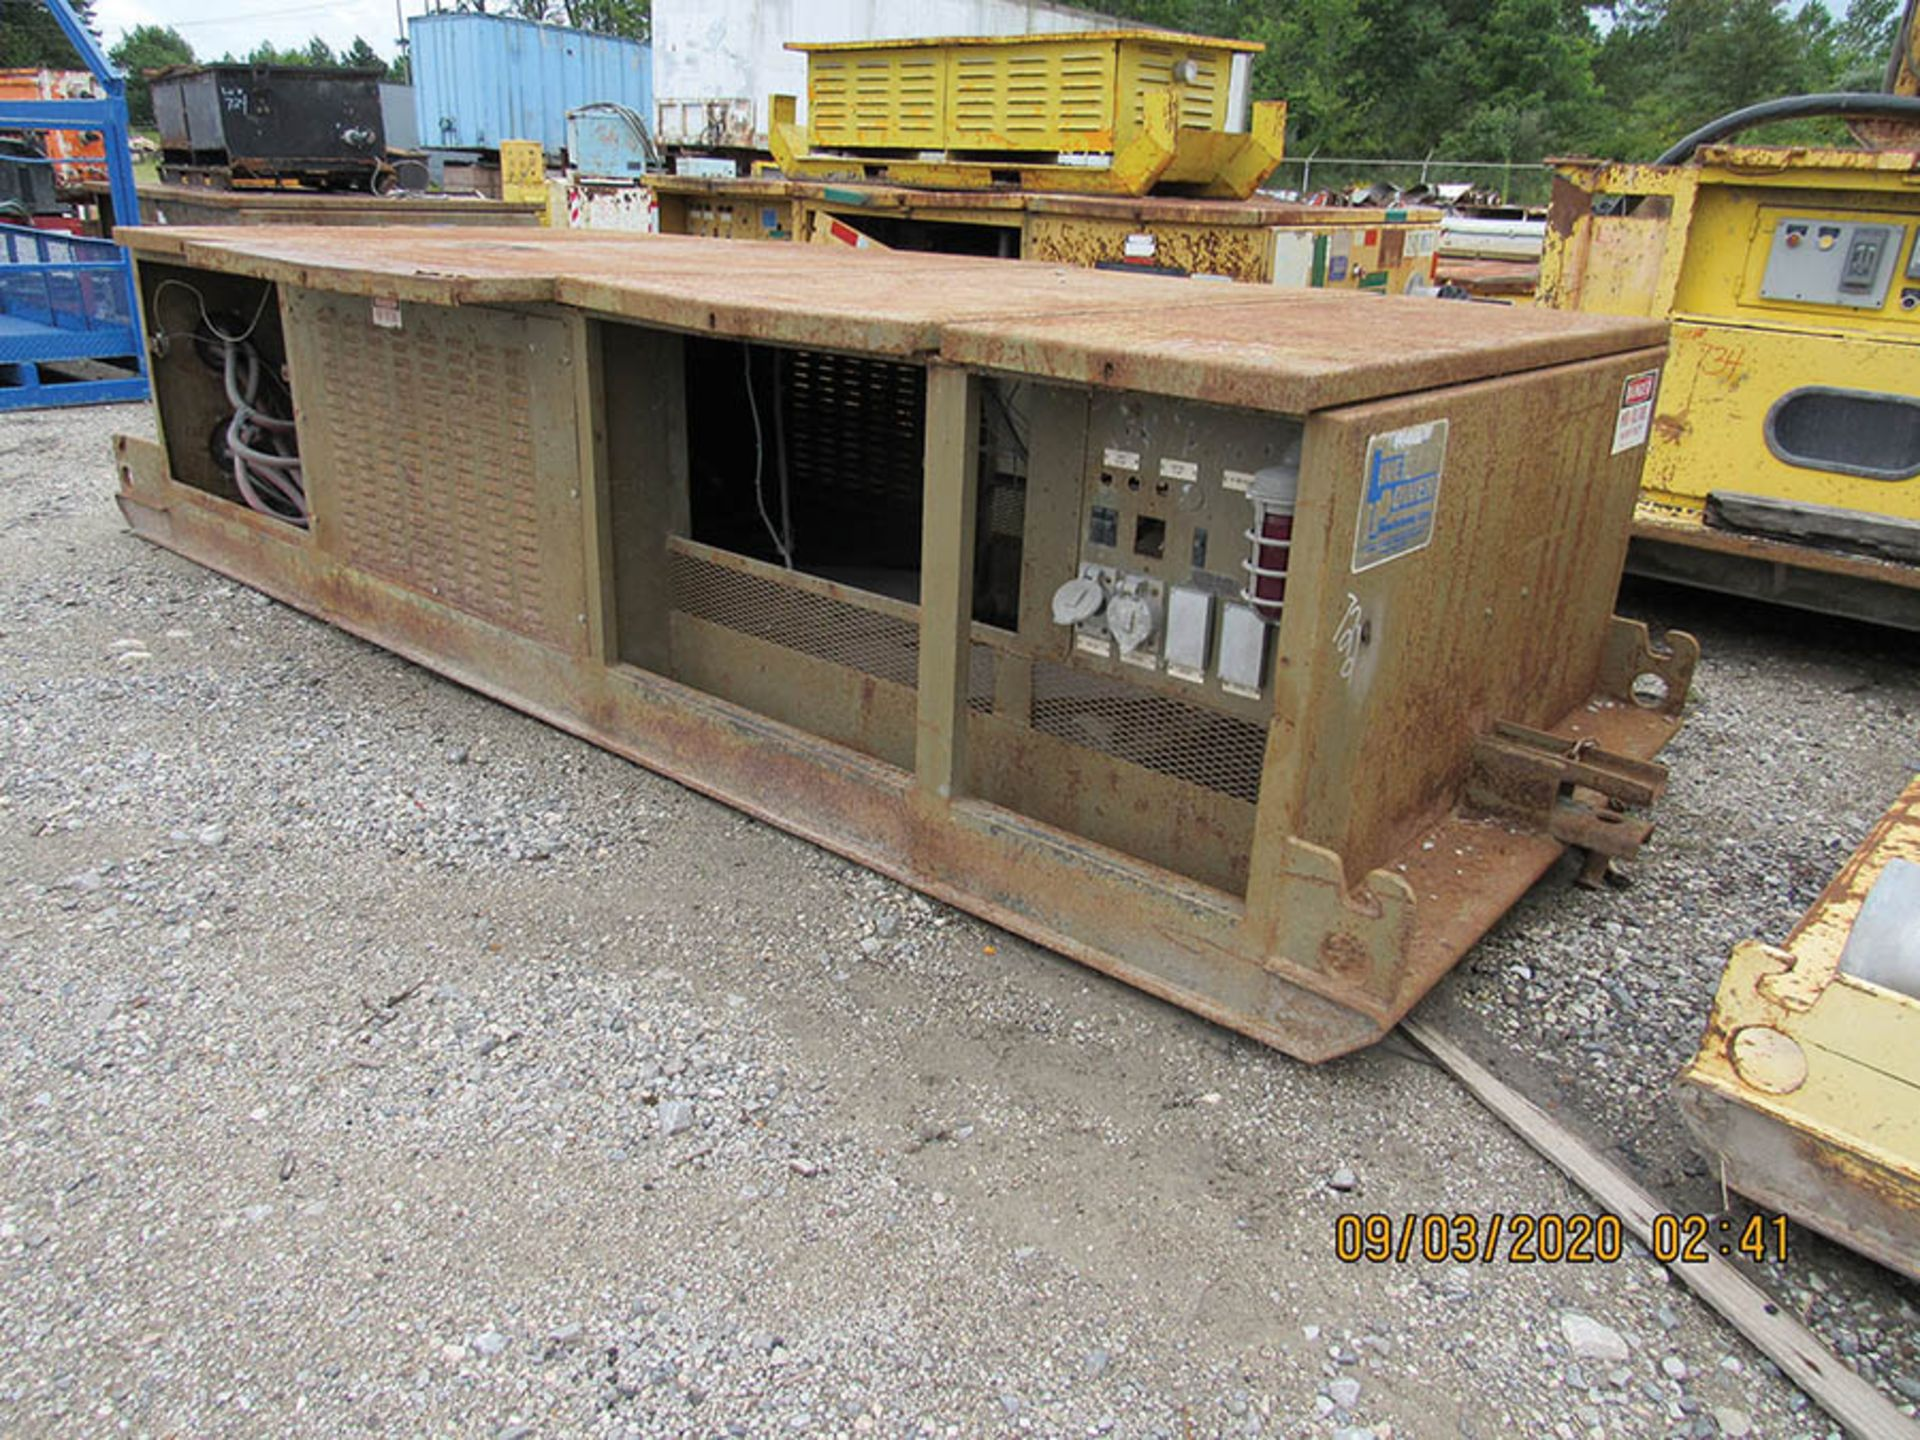 Lot 722 - LINE POWER CO. MODEL 300PC POWER CENTER, S/N 9937/R1898, 12470 INPUT AC OUTPUT 480 VAC 3-PHASE 60HZ